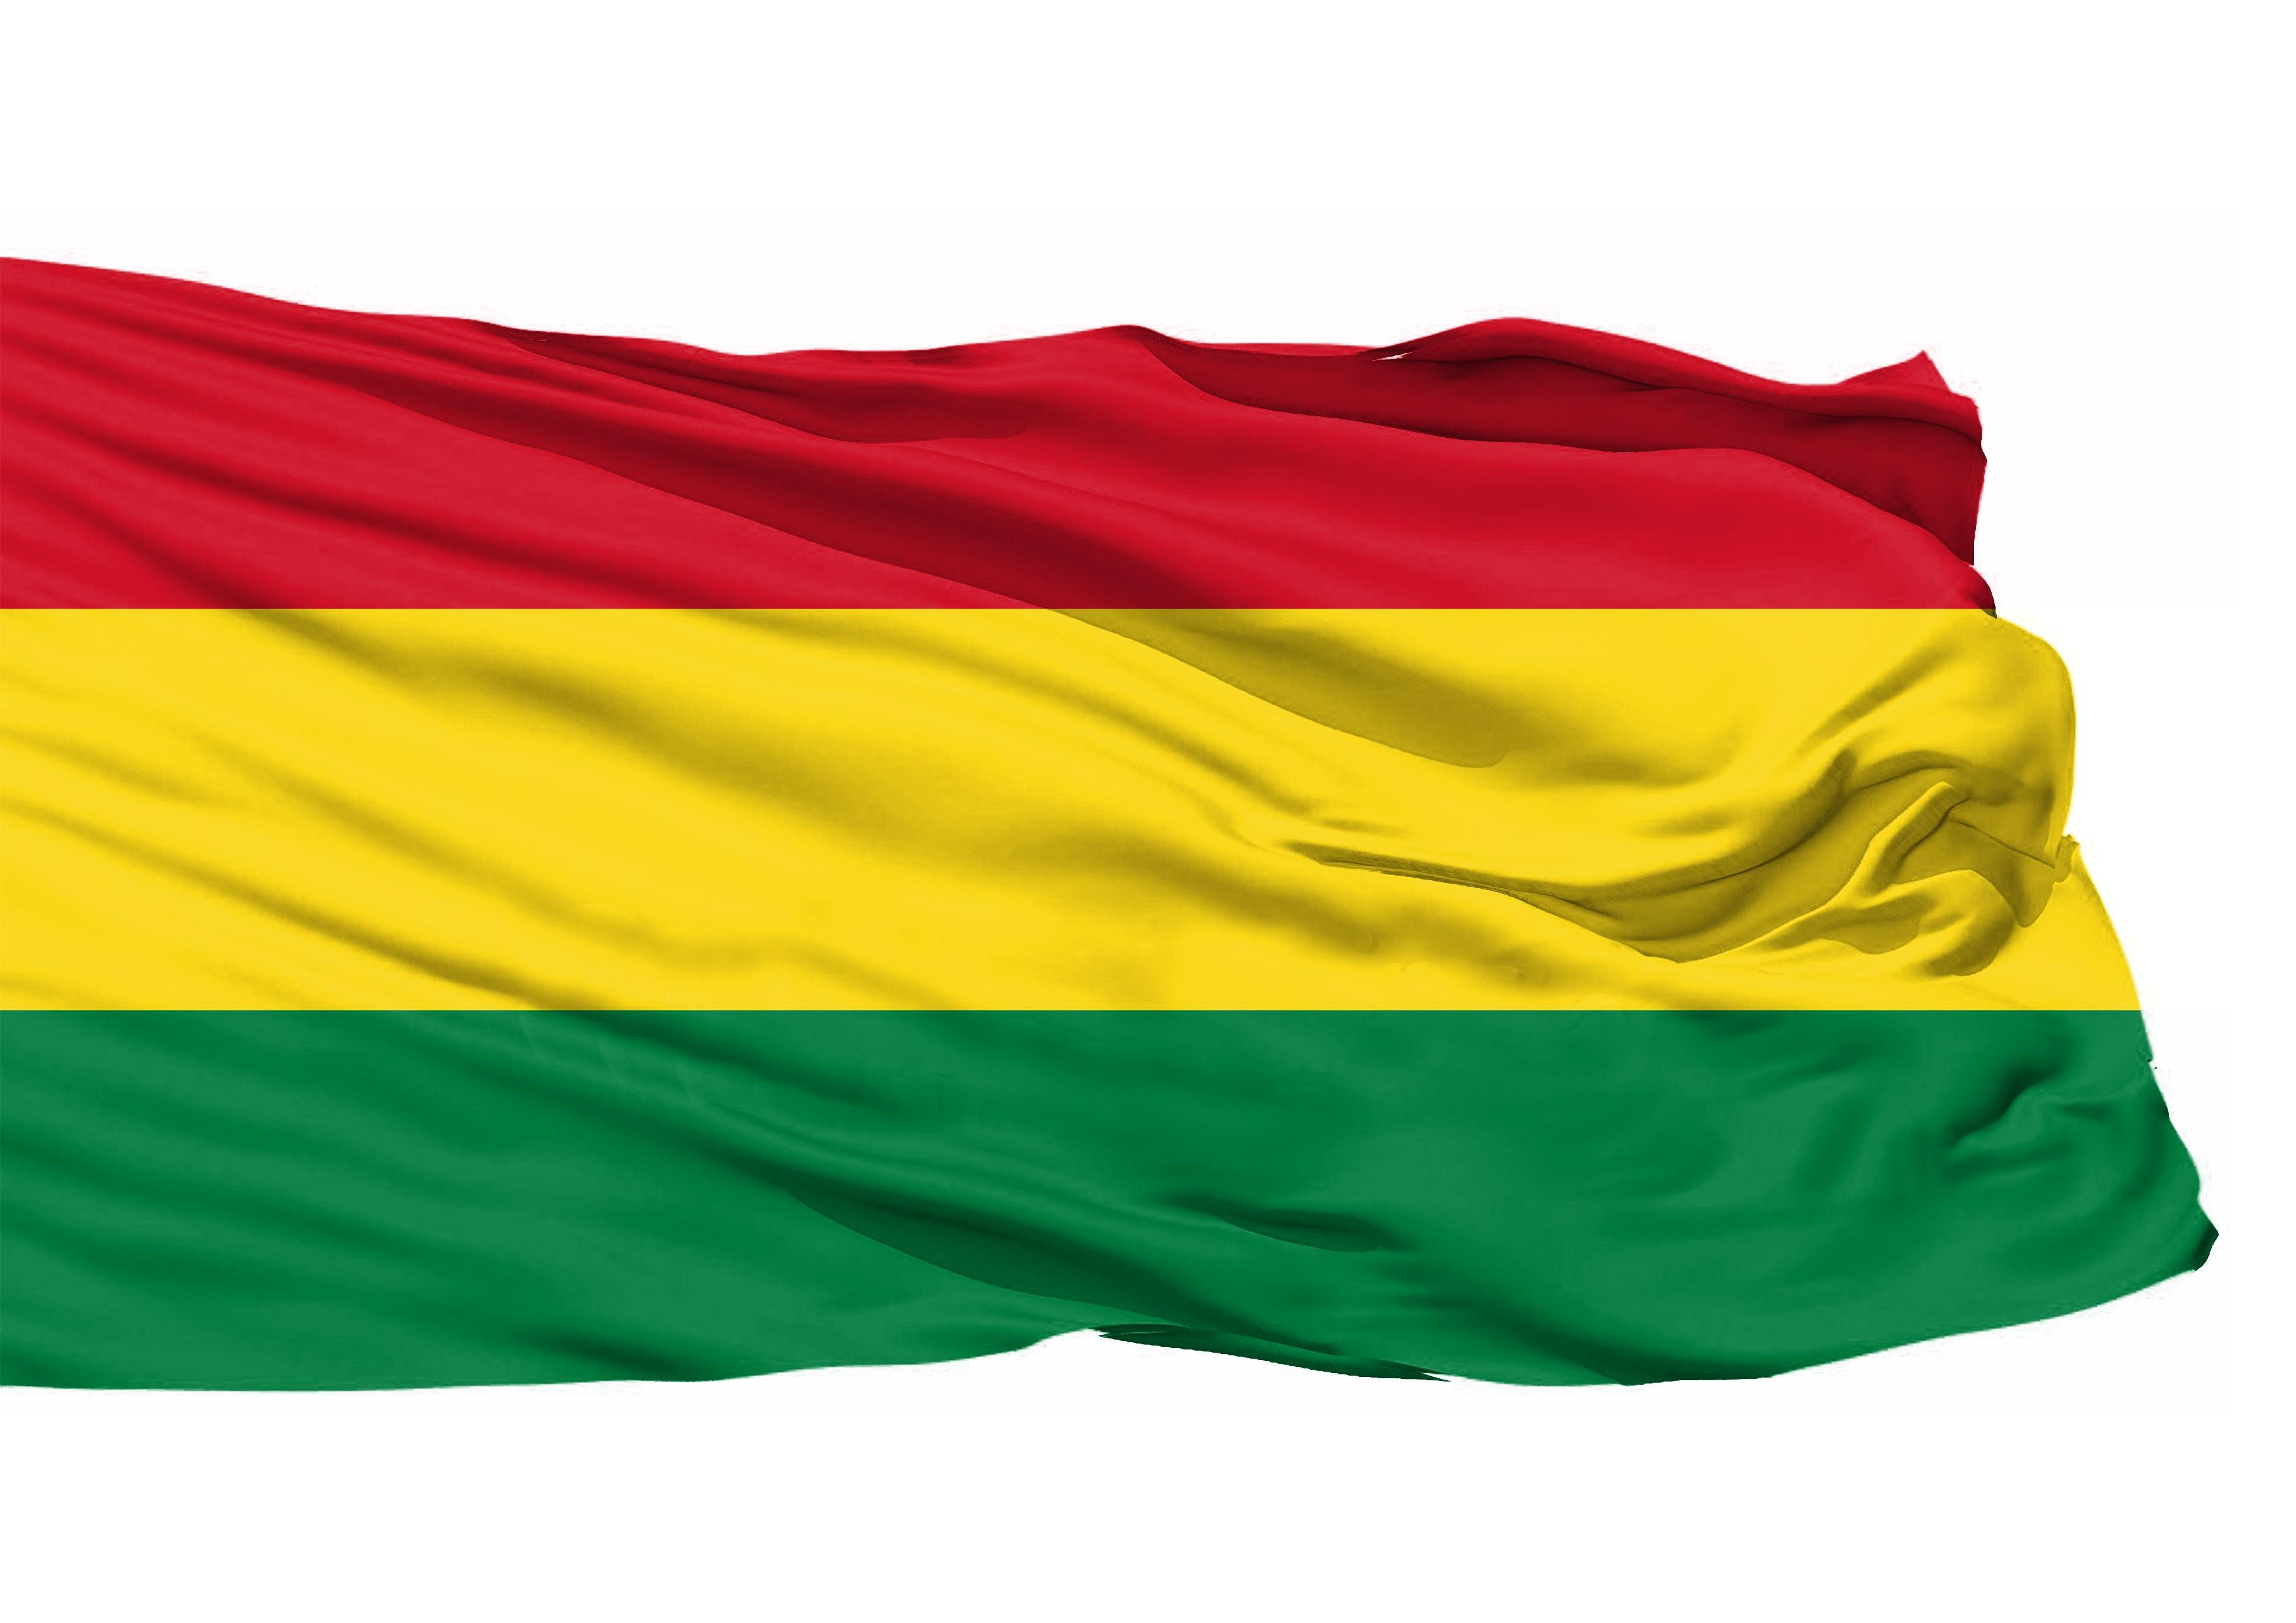 Free stock photo of Bolivia 3D Flag